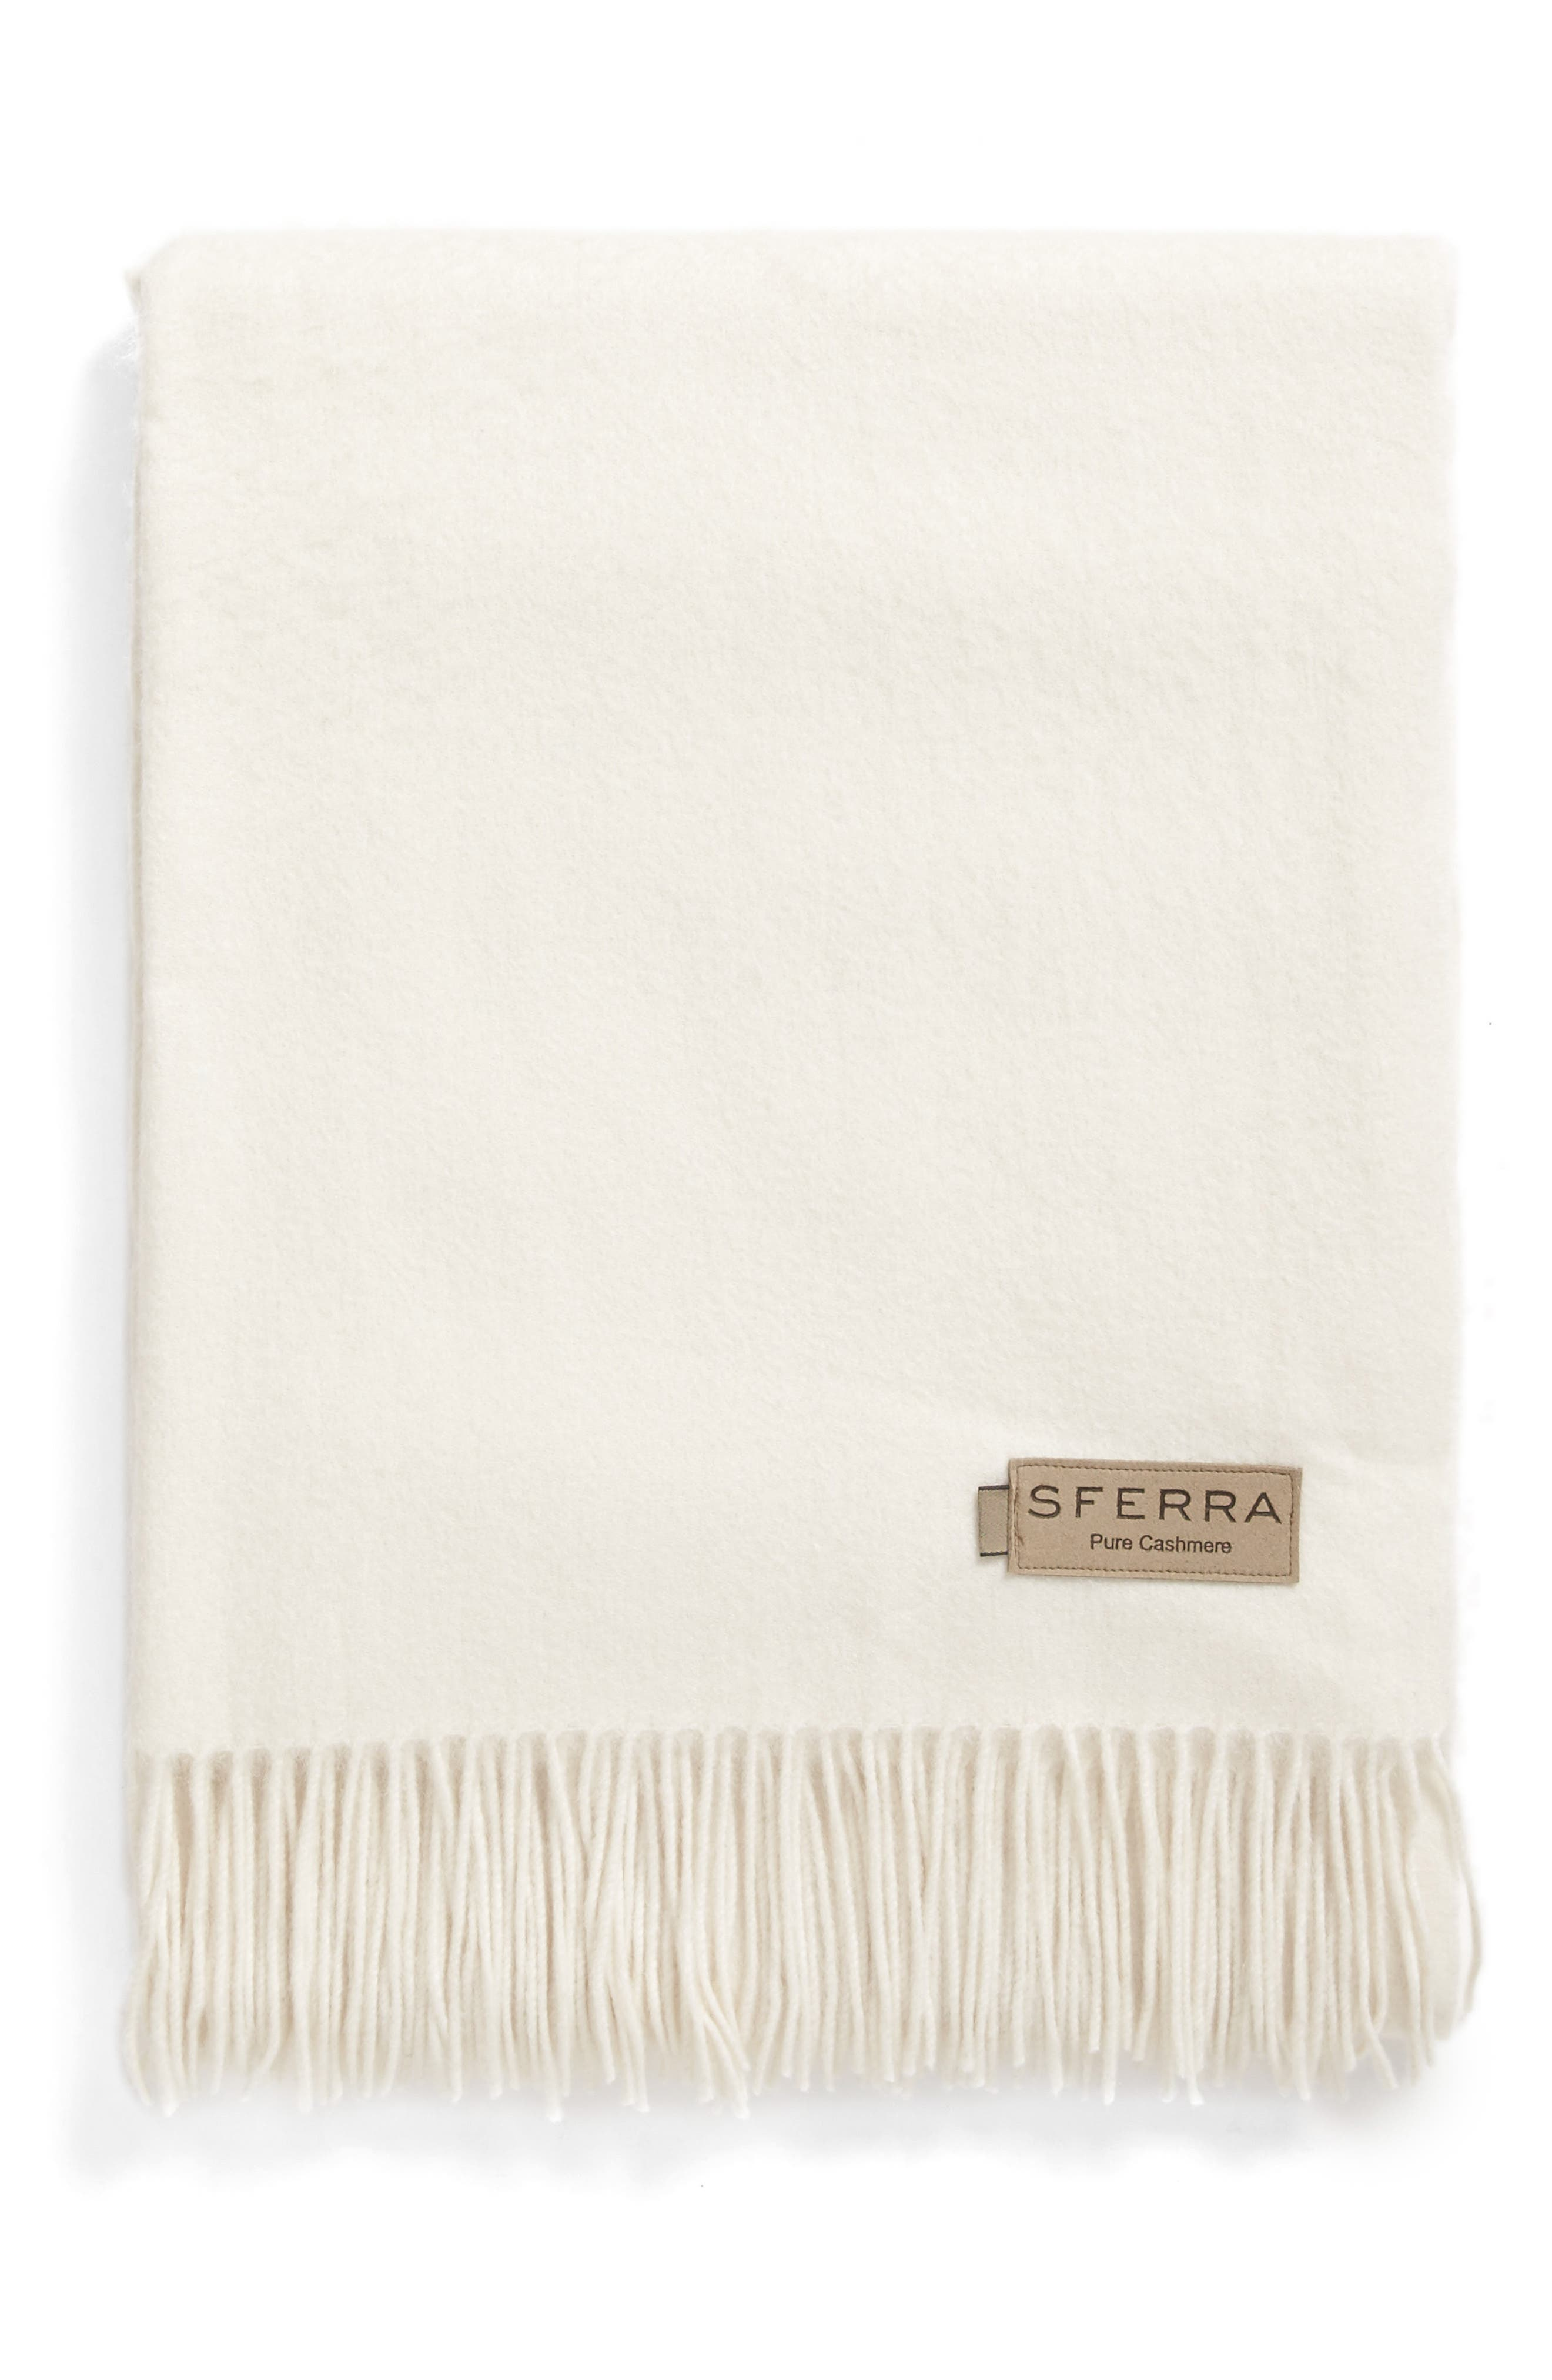 Dorsey Throw in IVORY cashmere blanket